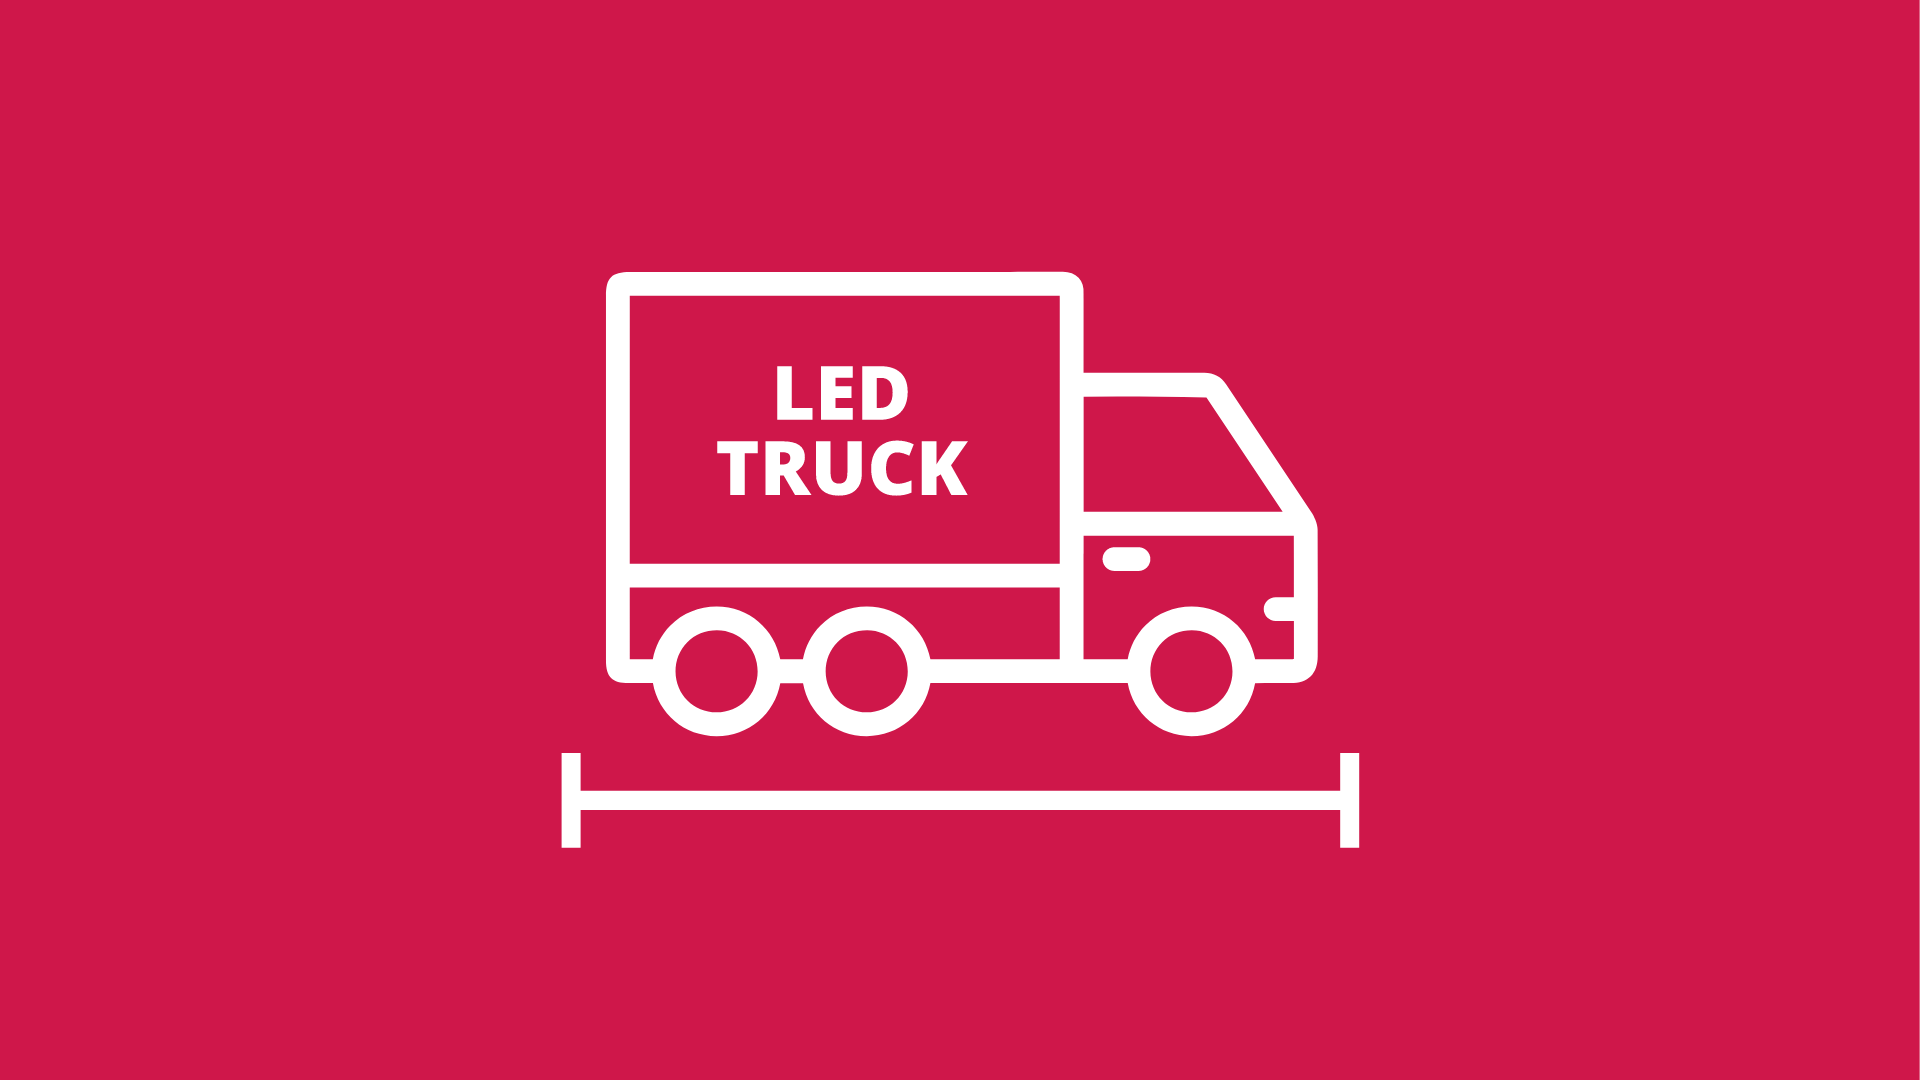 Our LED trucks and LED trailers are space saving.